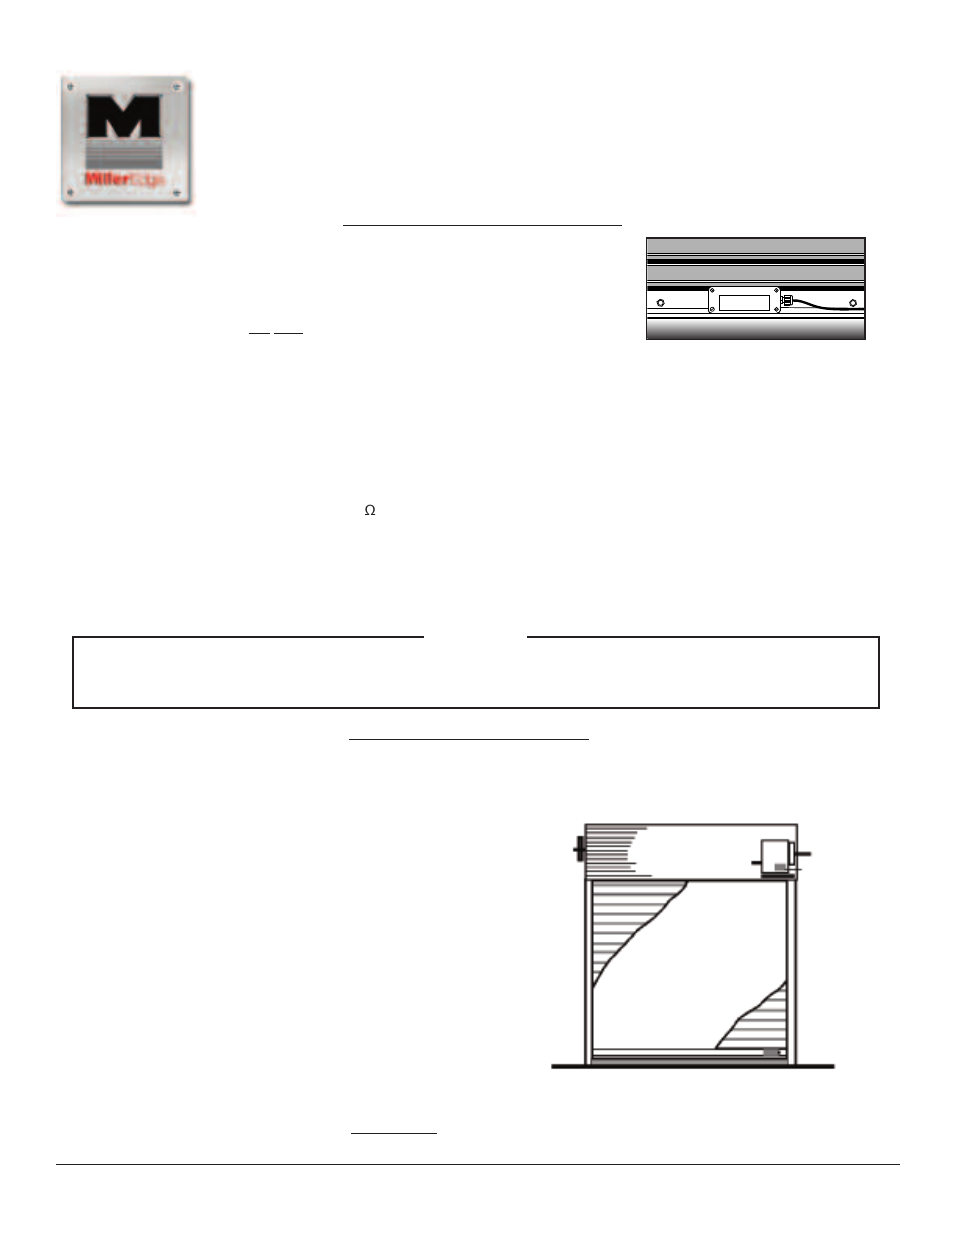 Controlled Products Systems Group MWCK04 User Manual | 4 pages